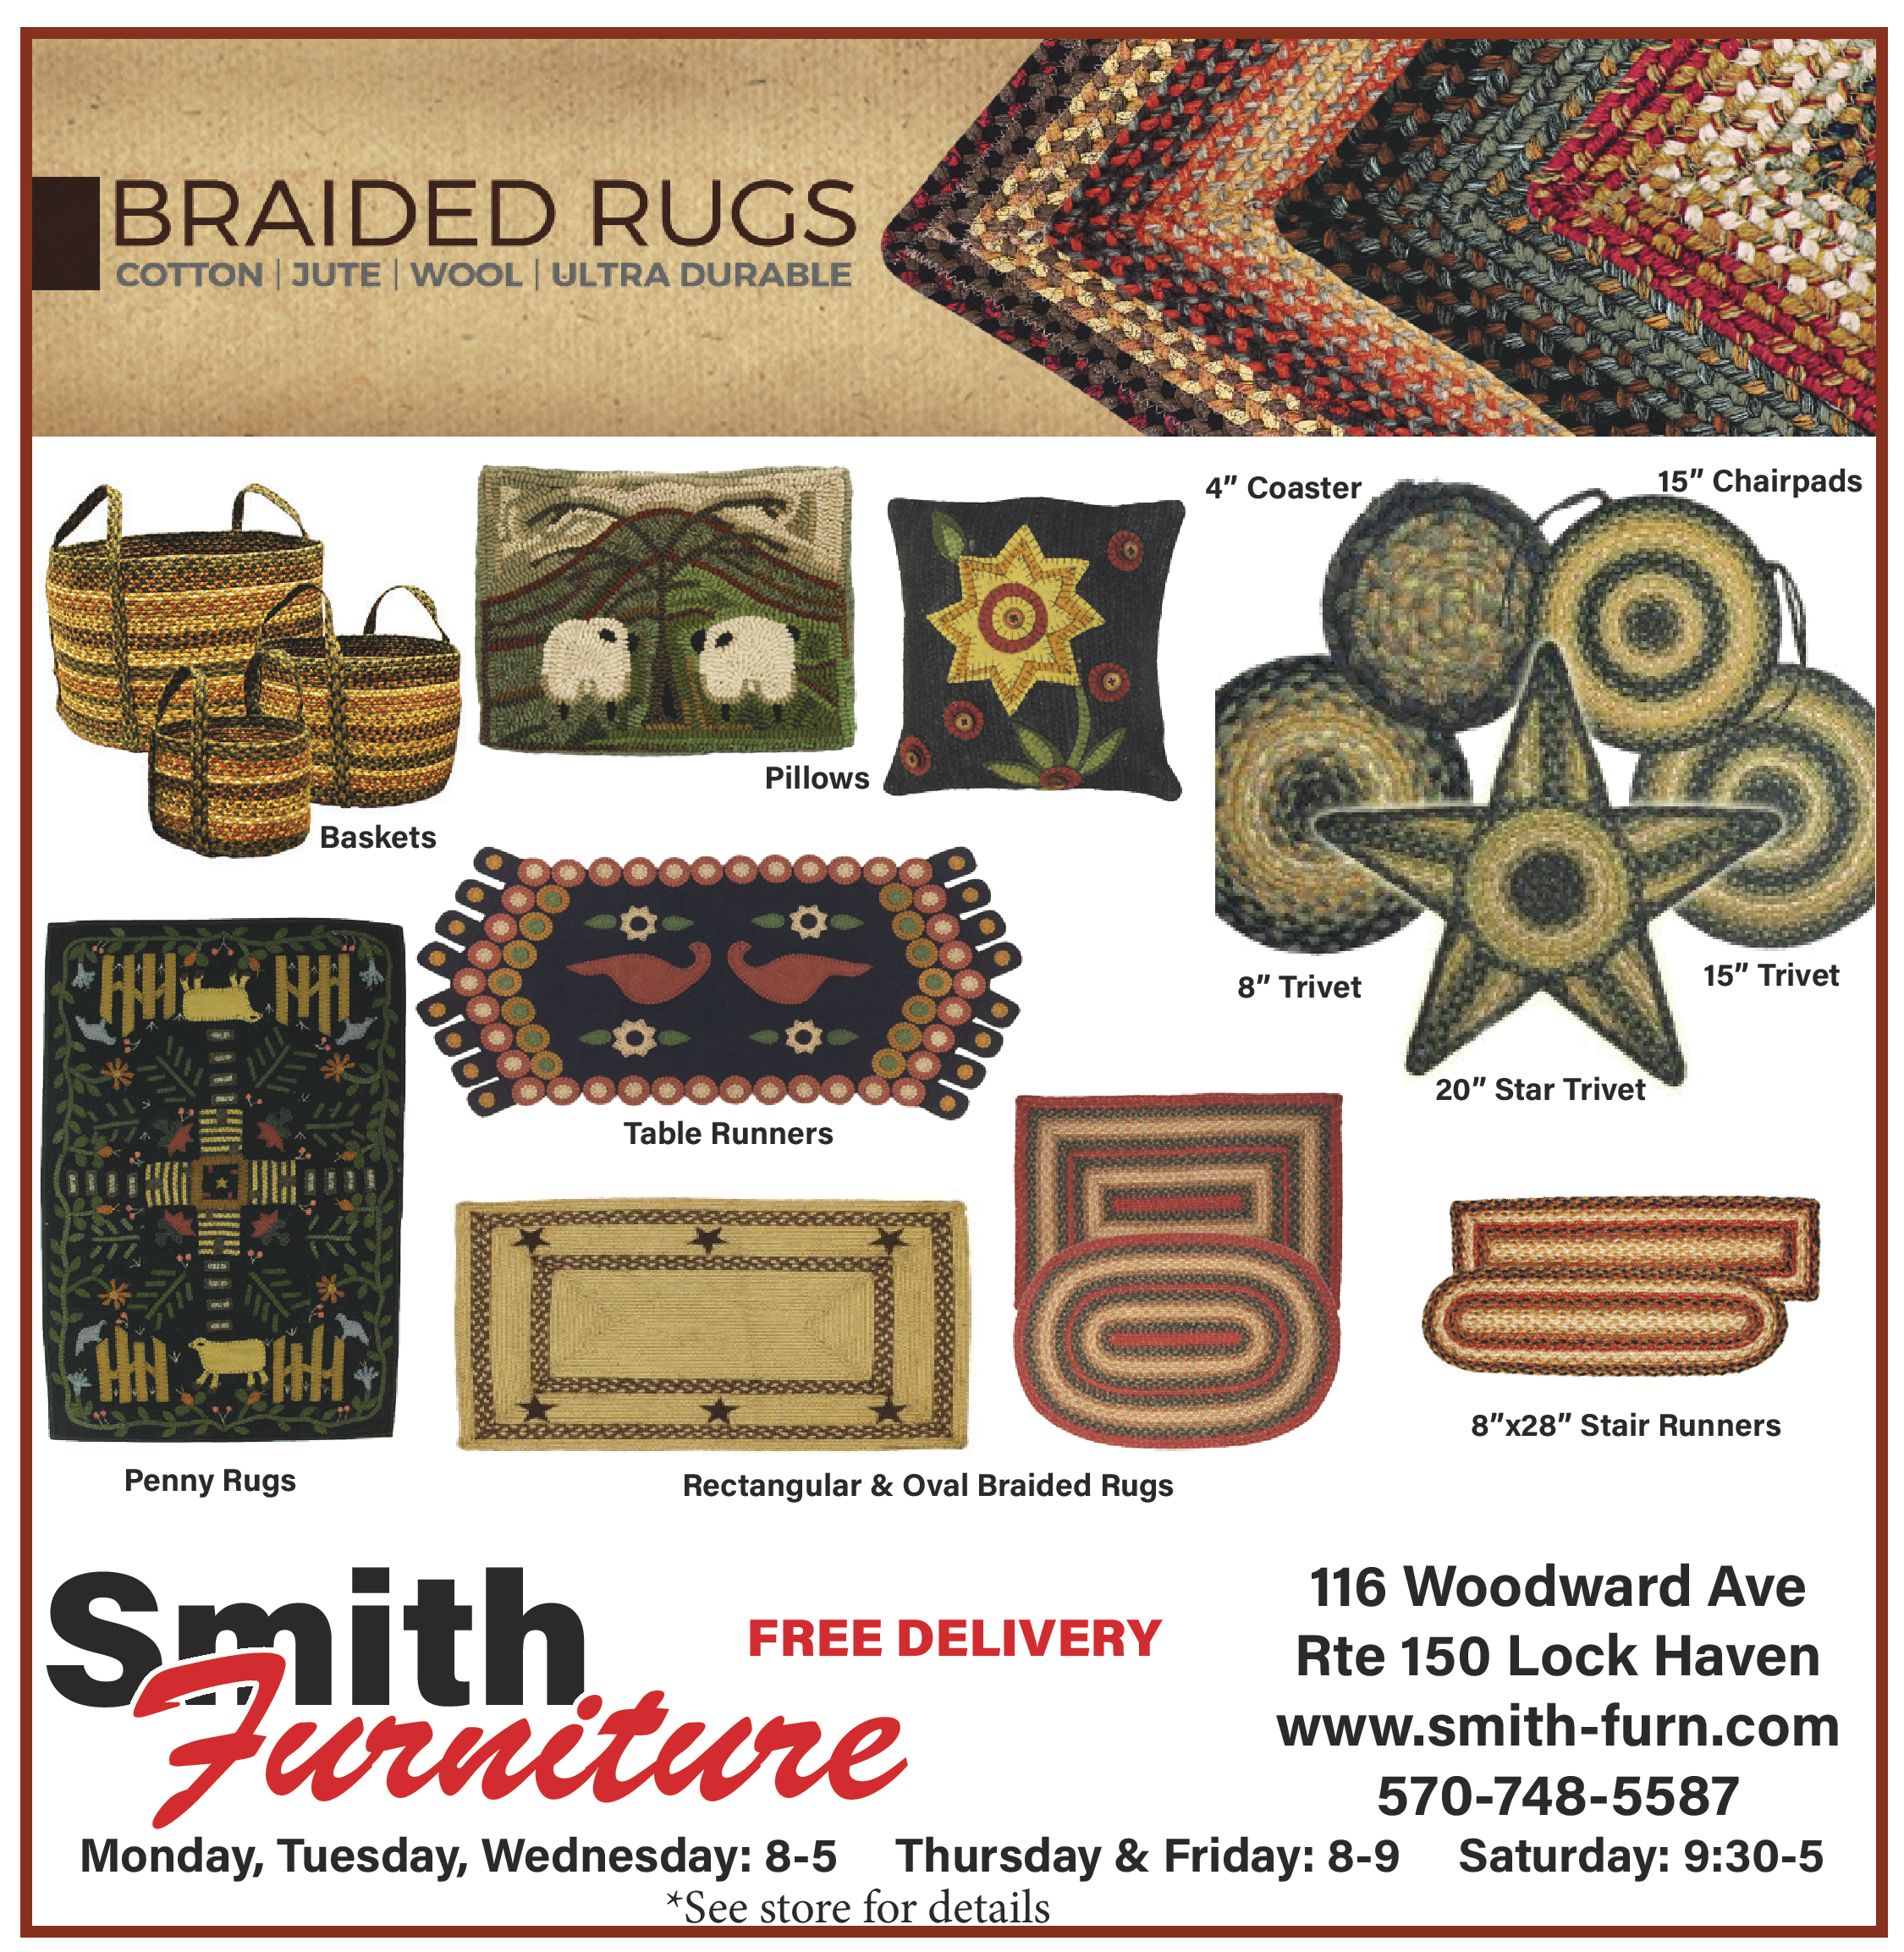 Braided Rug Display Ad